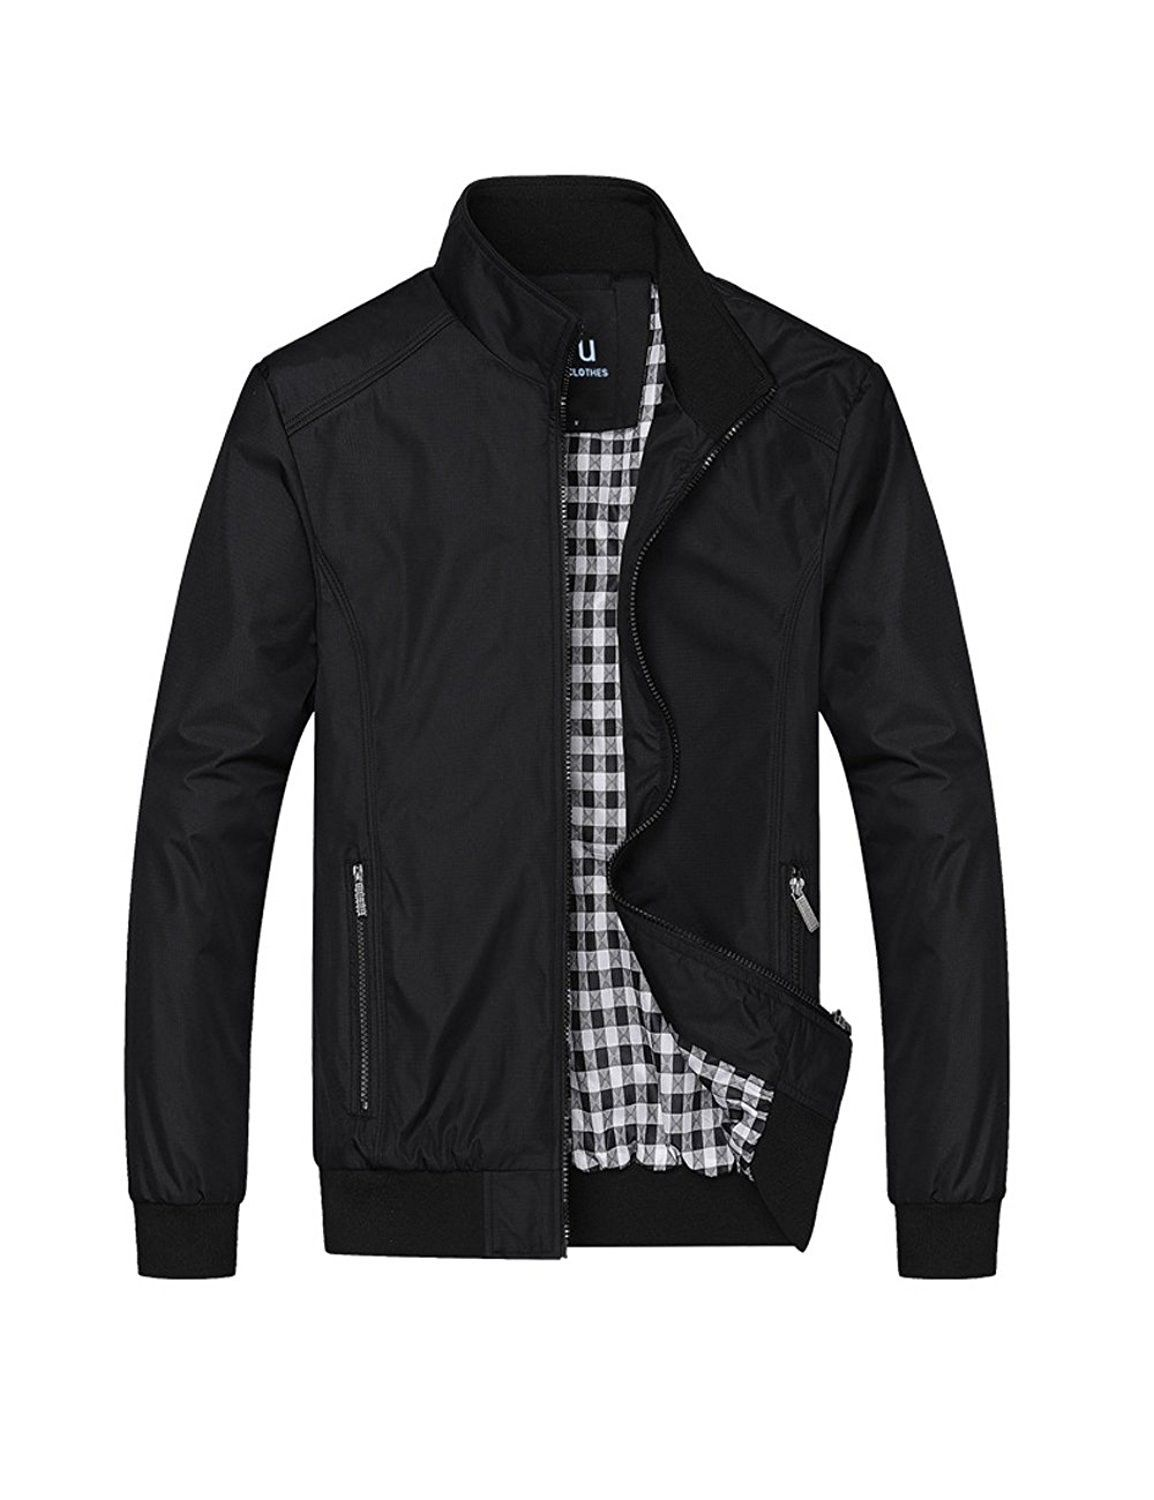 9537372a143 Mens Long Sleeved Classic Bomber Jacket Casual Coat Outdoor ...